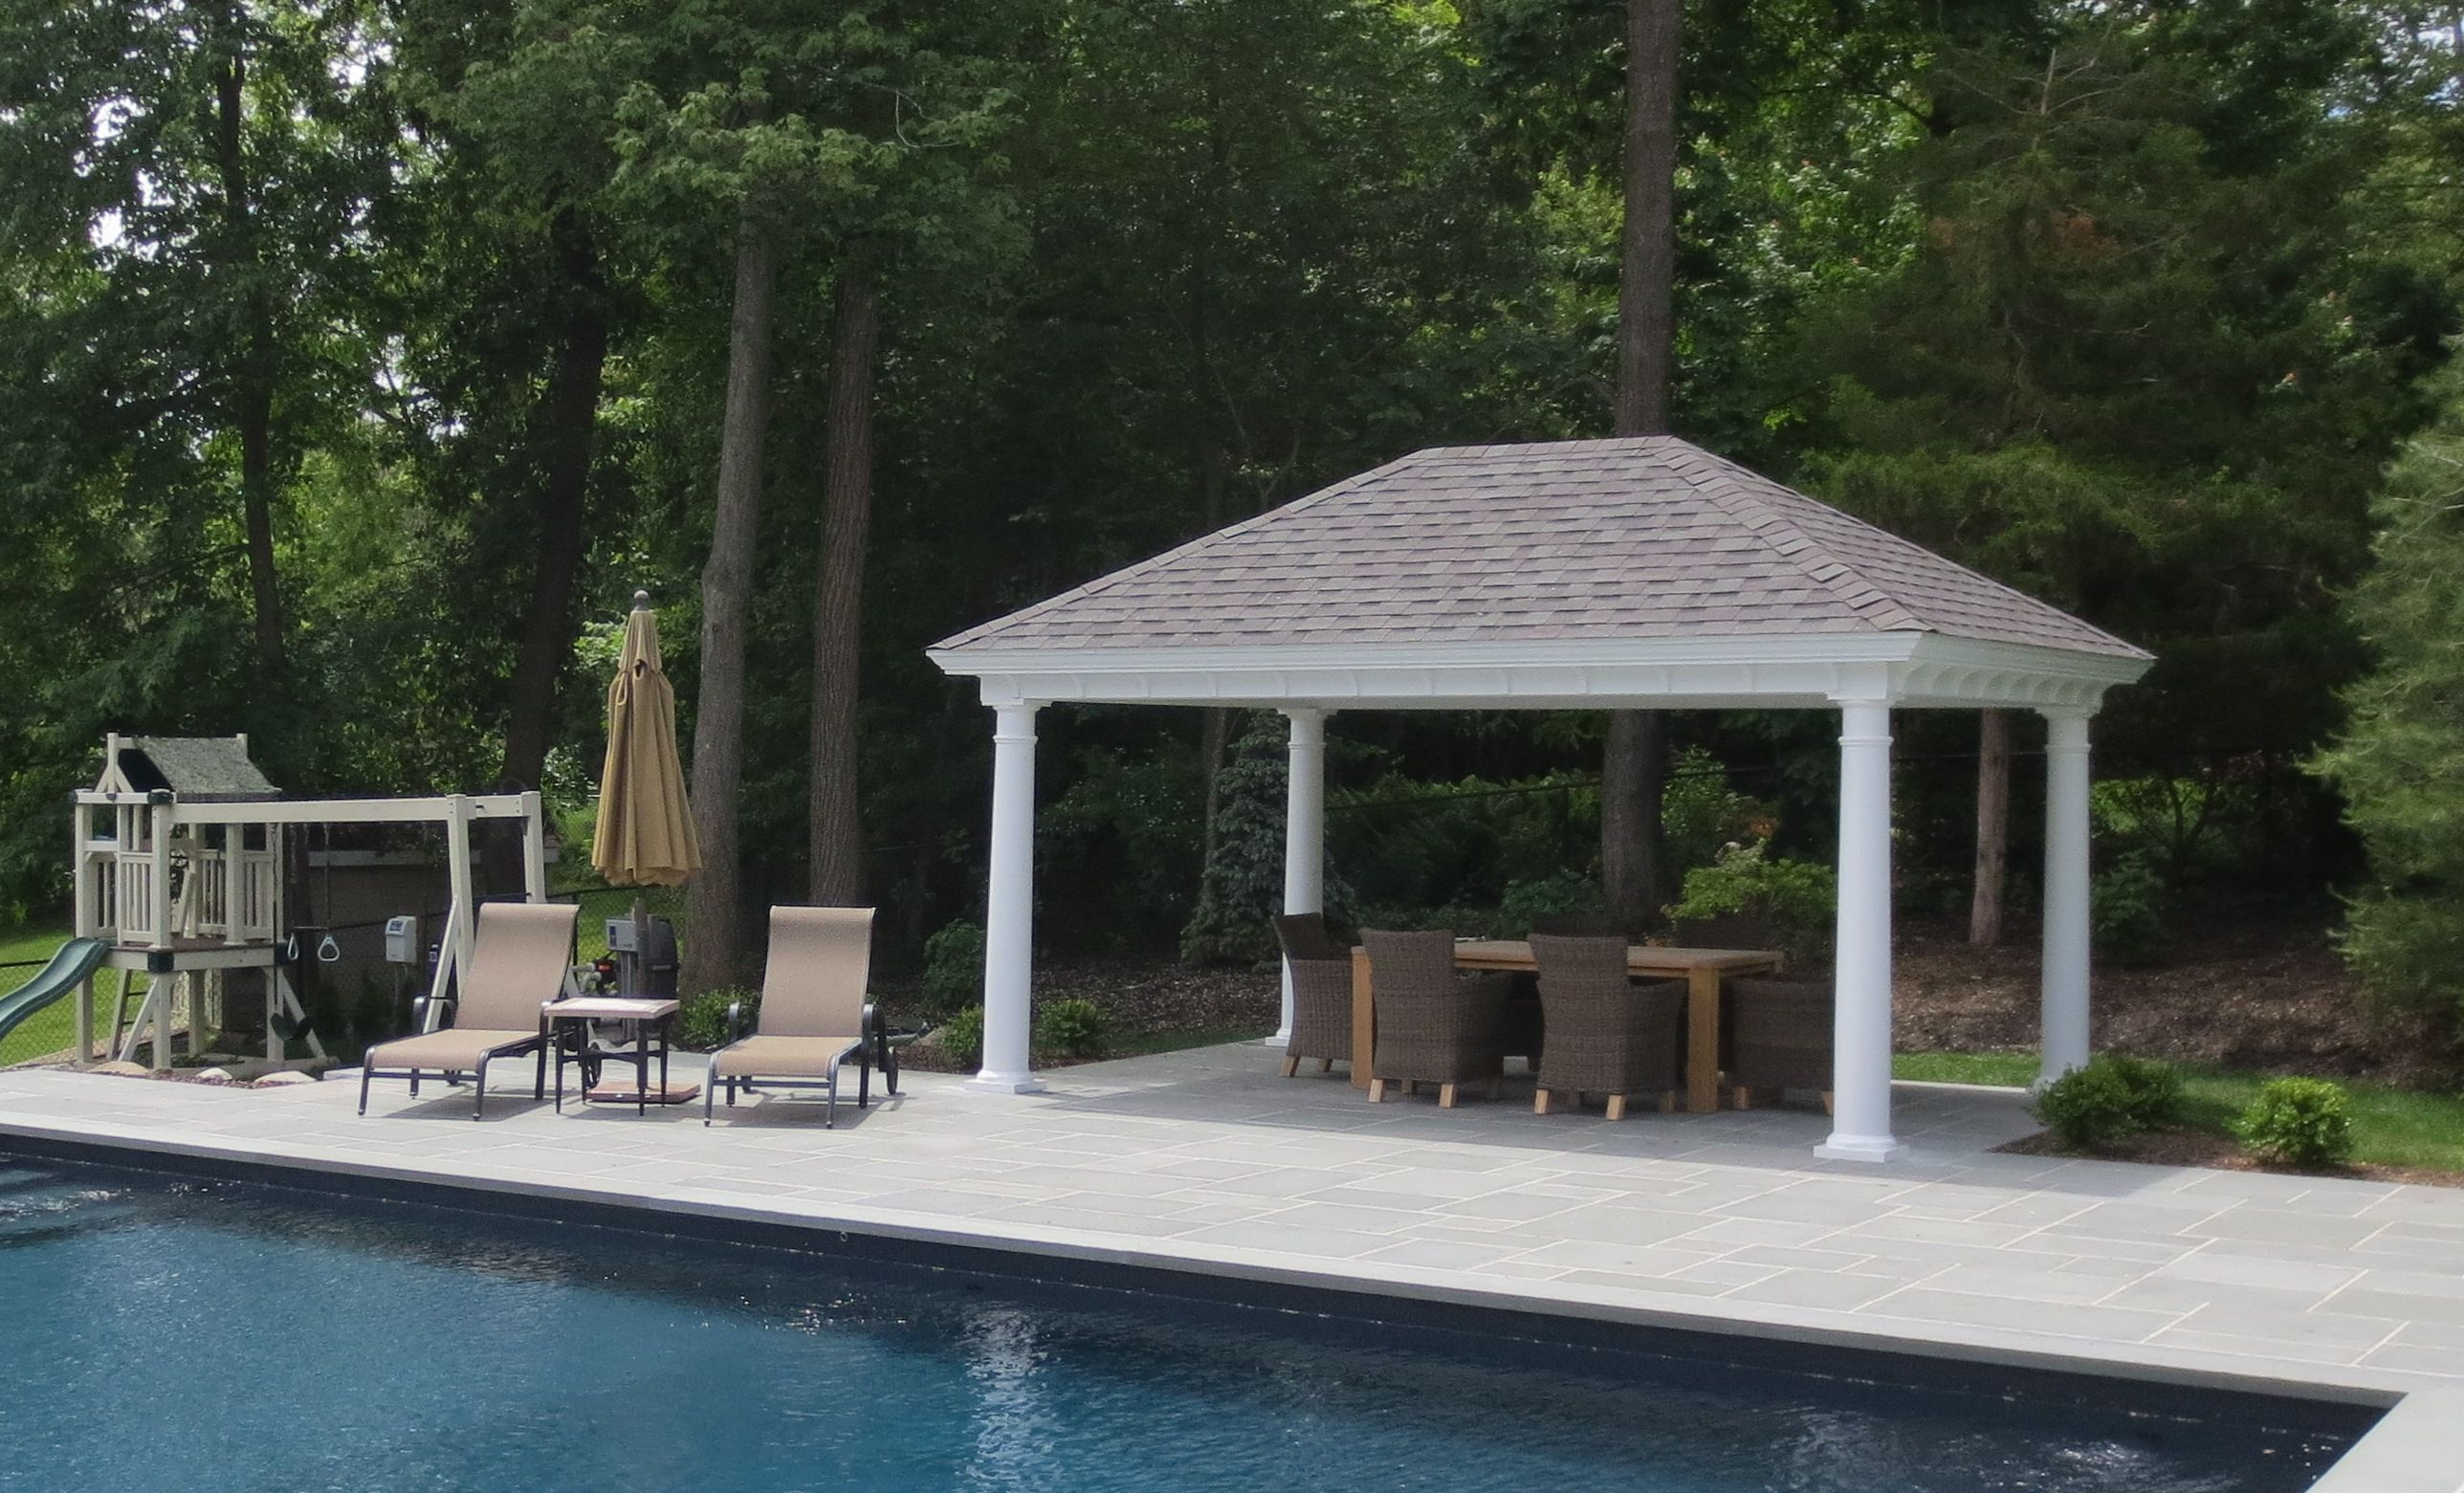 12 X 16 Vintage Poolside Pavilion Backyard Pavilion Outdoor Pavilion Backyard Gazebo